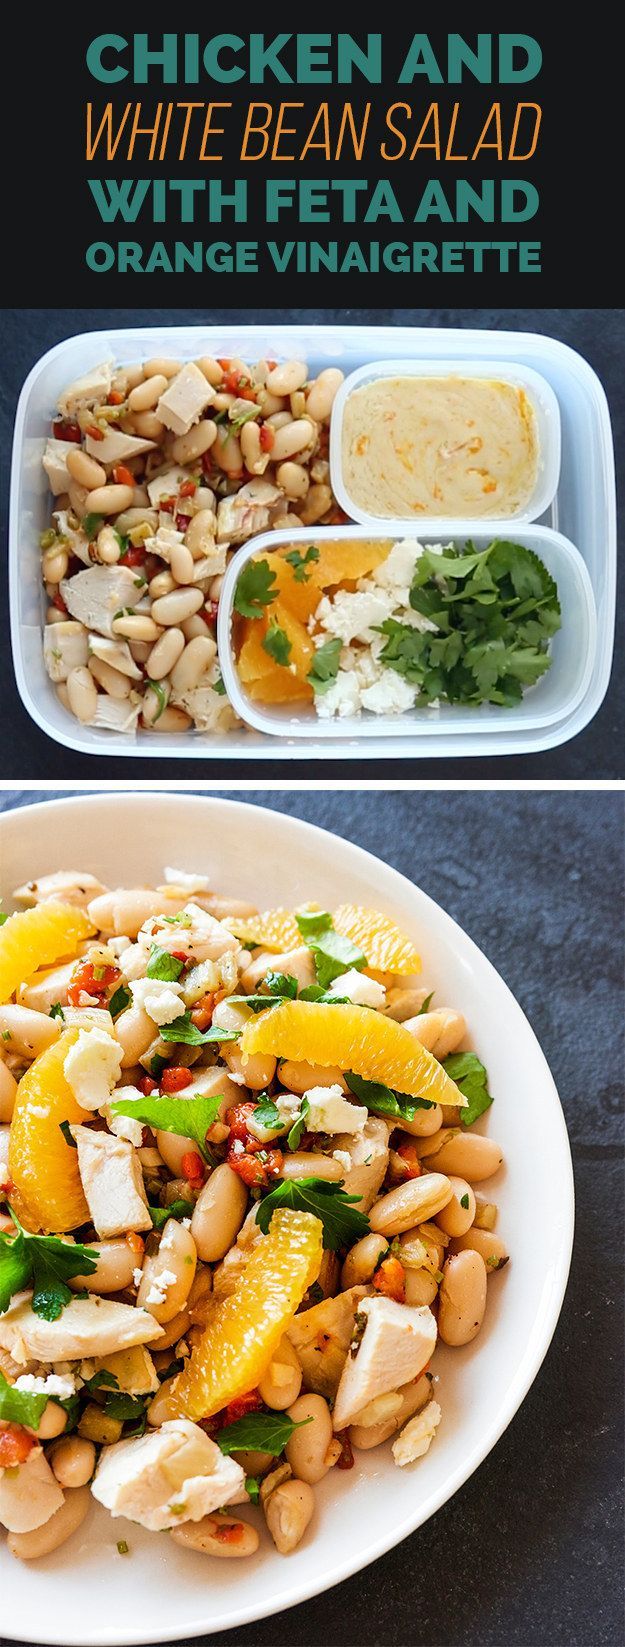 167 best school lunch box bento images on pinterest japanese food